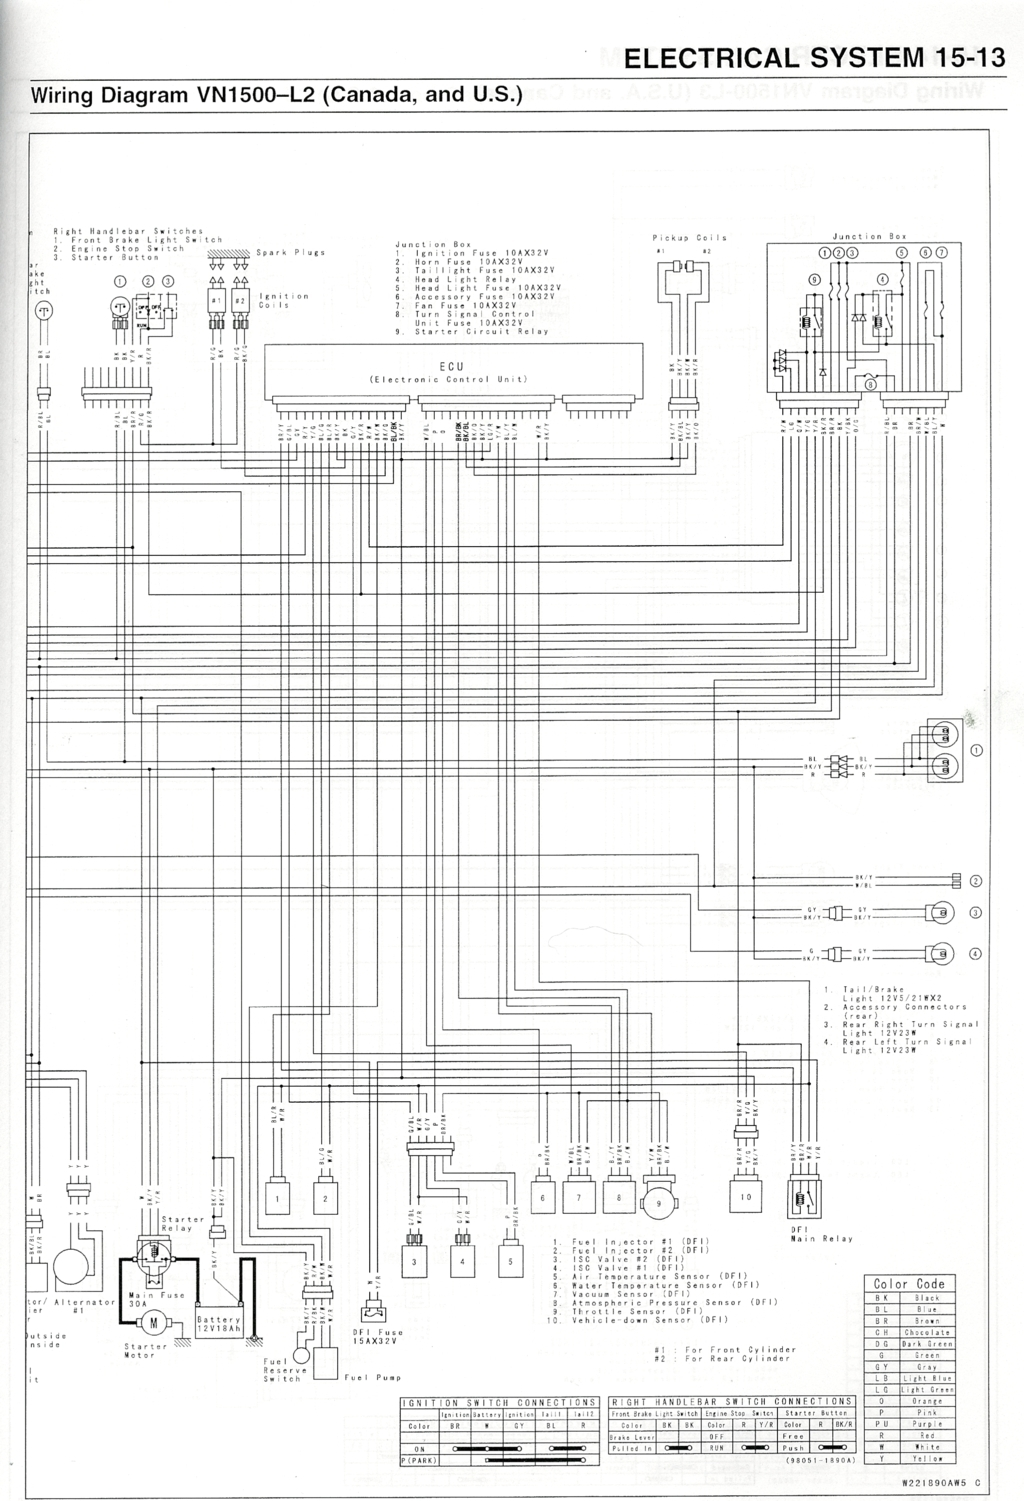 nomad_wiring_diagram_p2 vulcan wiring diagrams gadget's fixit page Kawasaki Vulcan 1500 Wiring Diagram at readyjetset.co